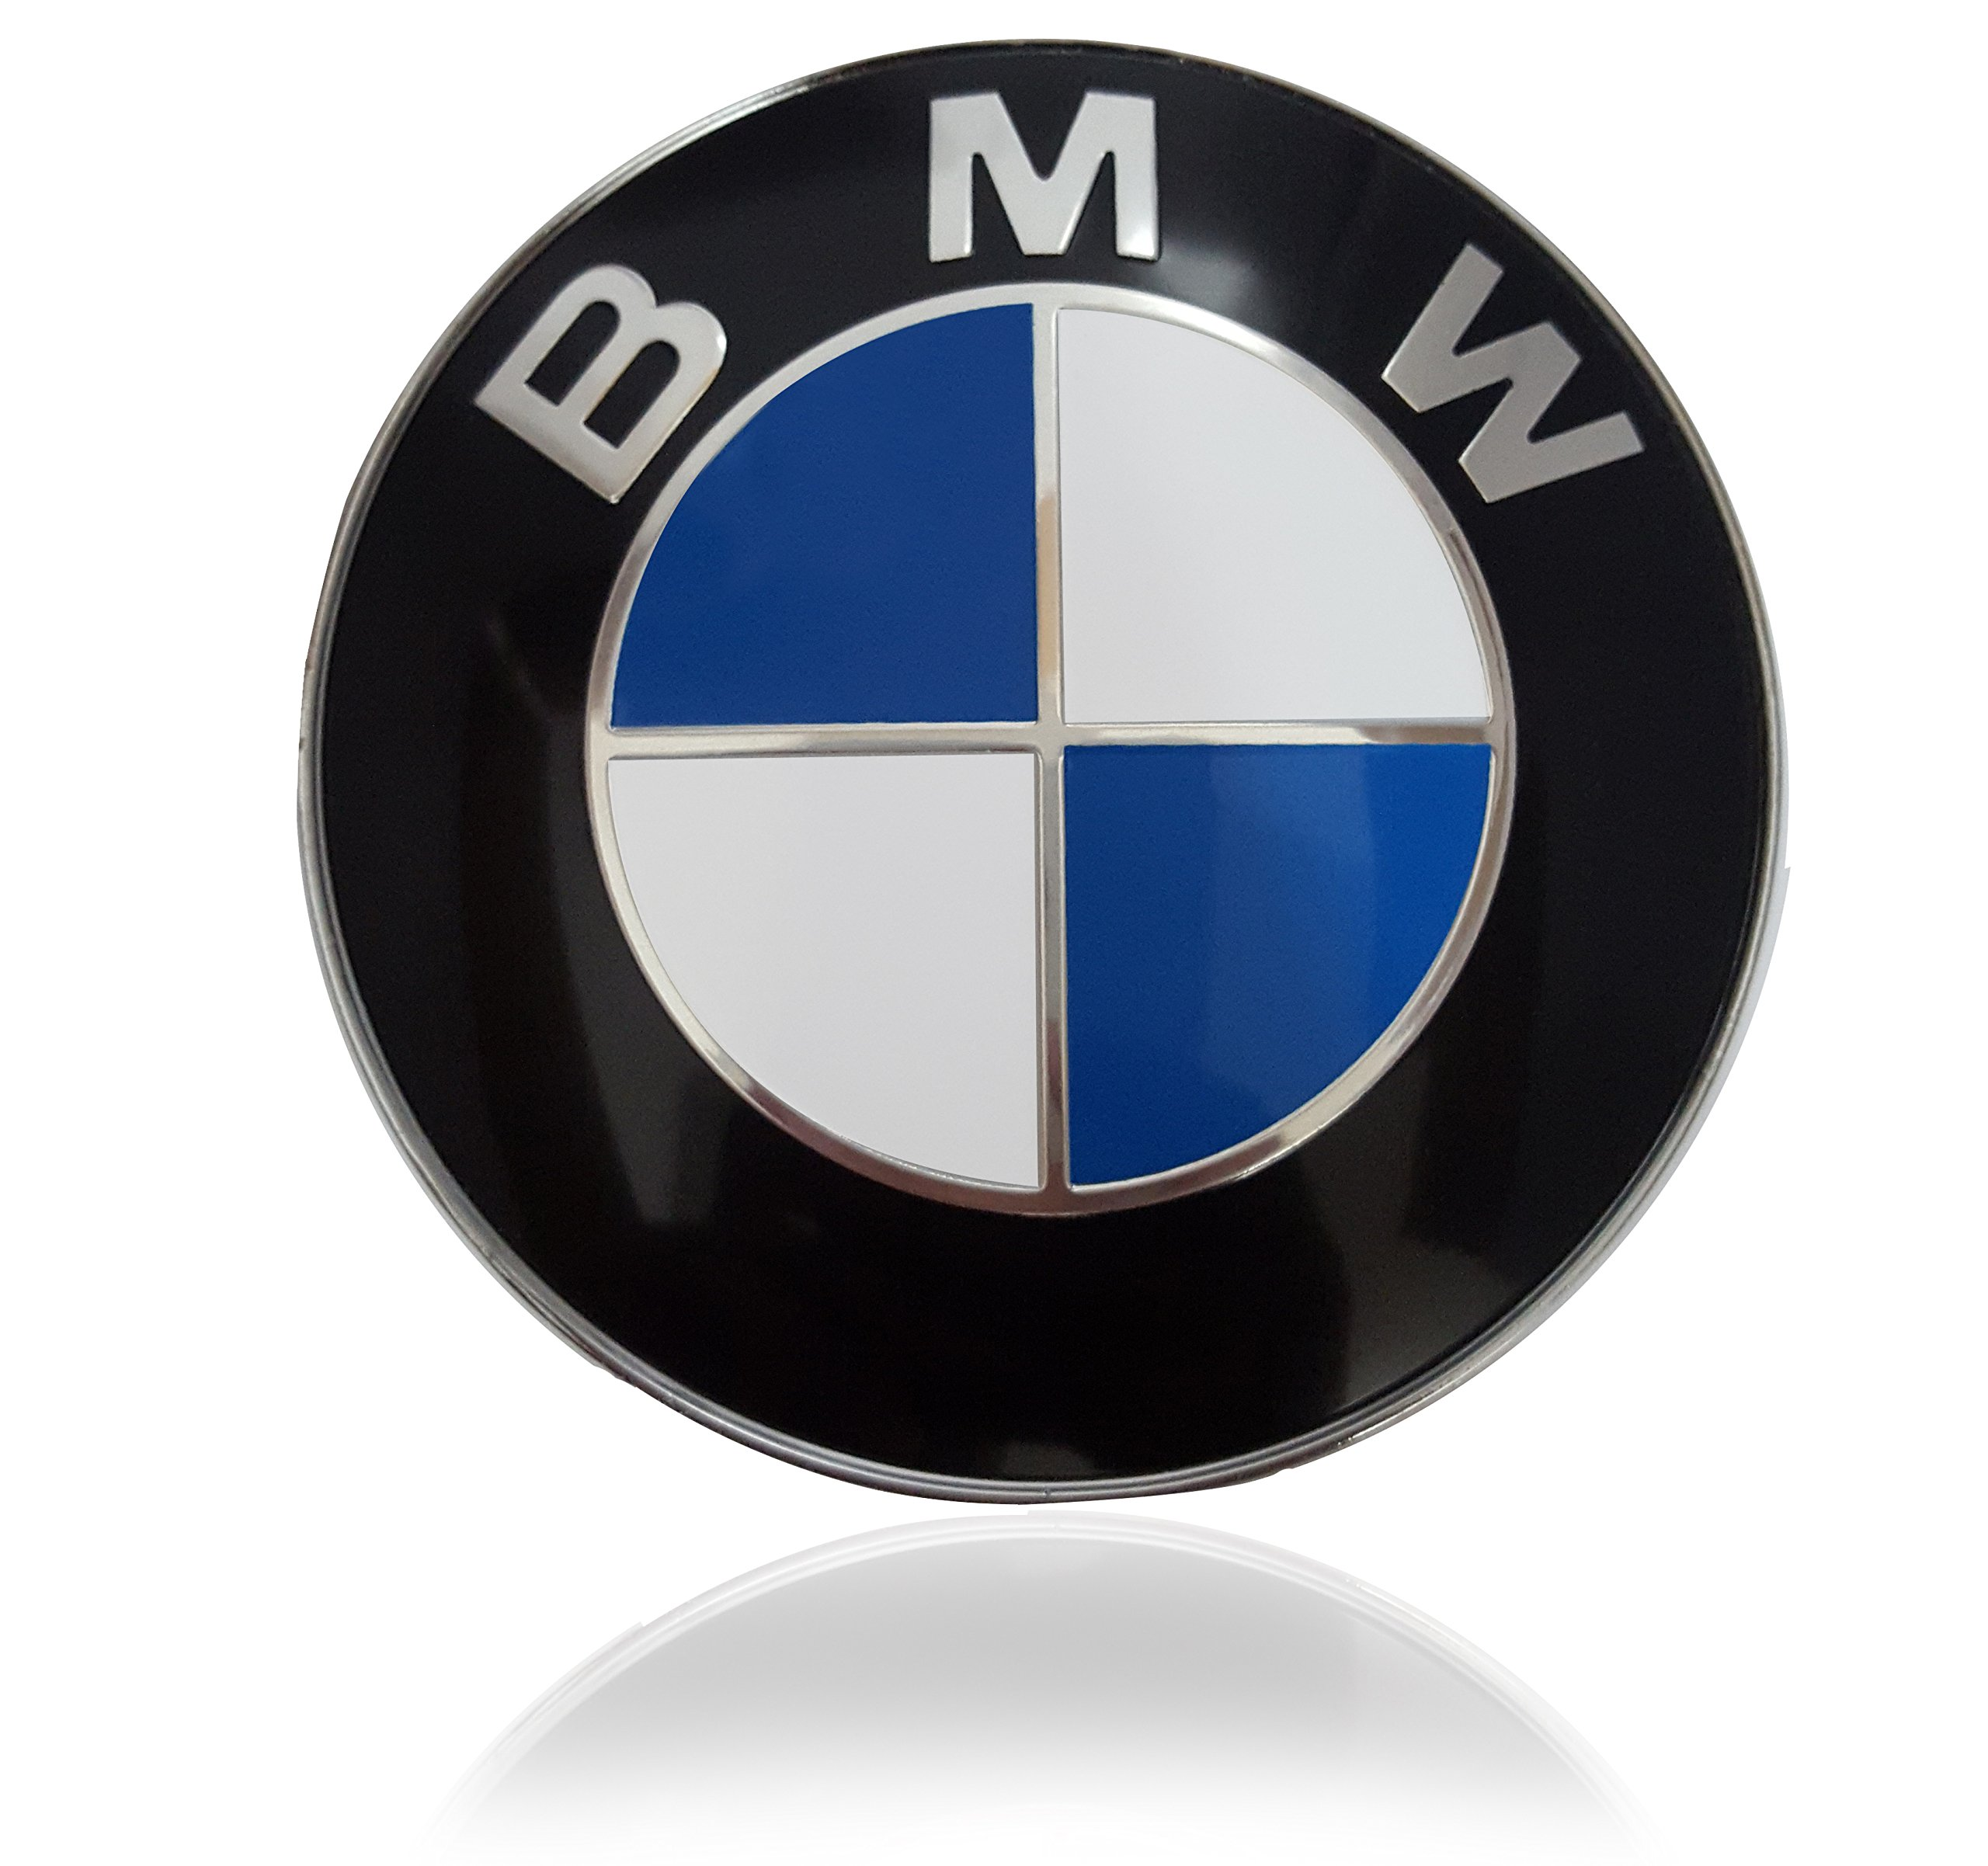 High Quality Replacement Emblem Standard 82mm Diameter